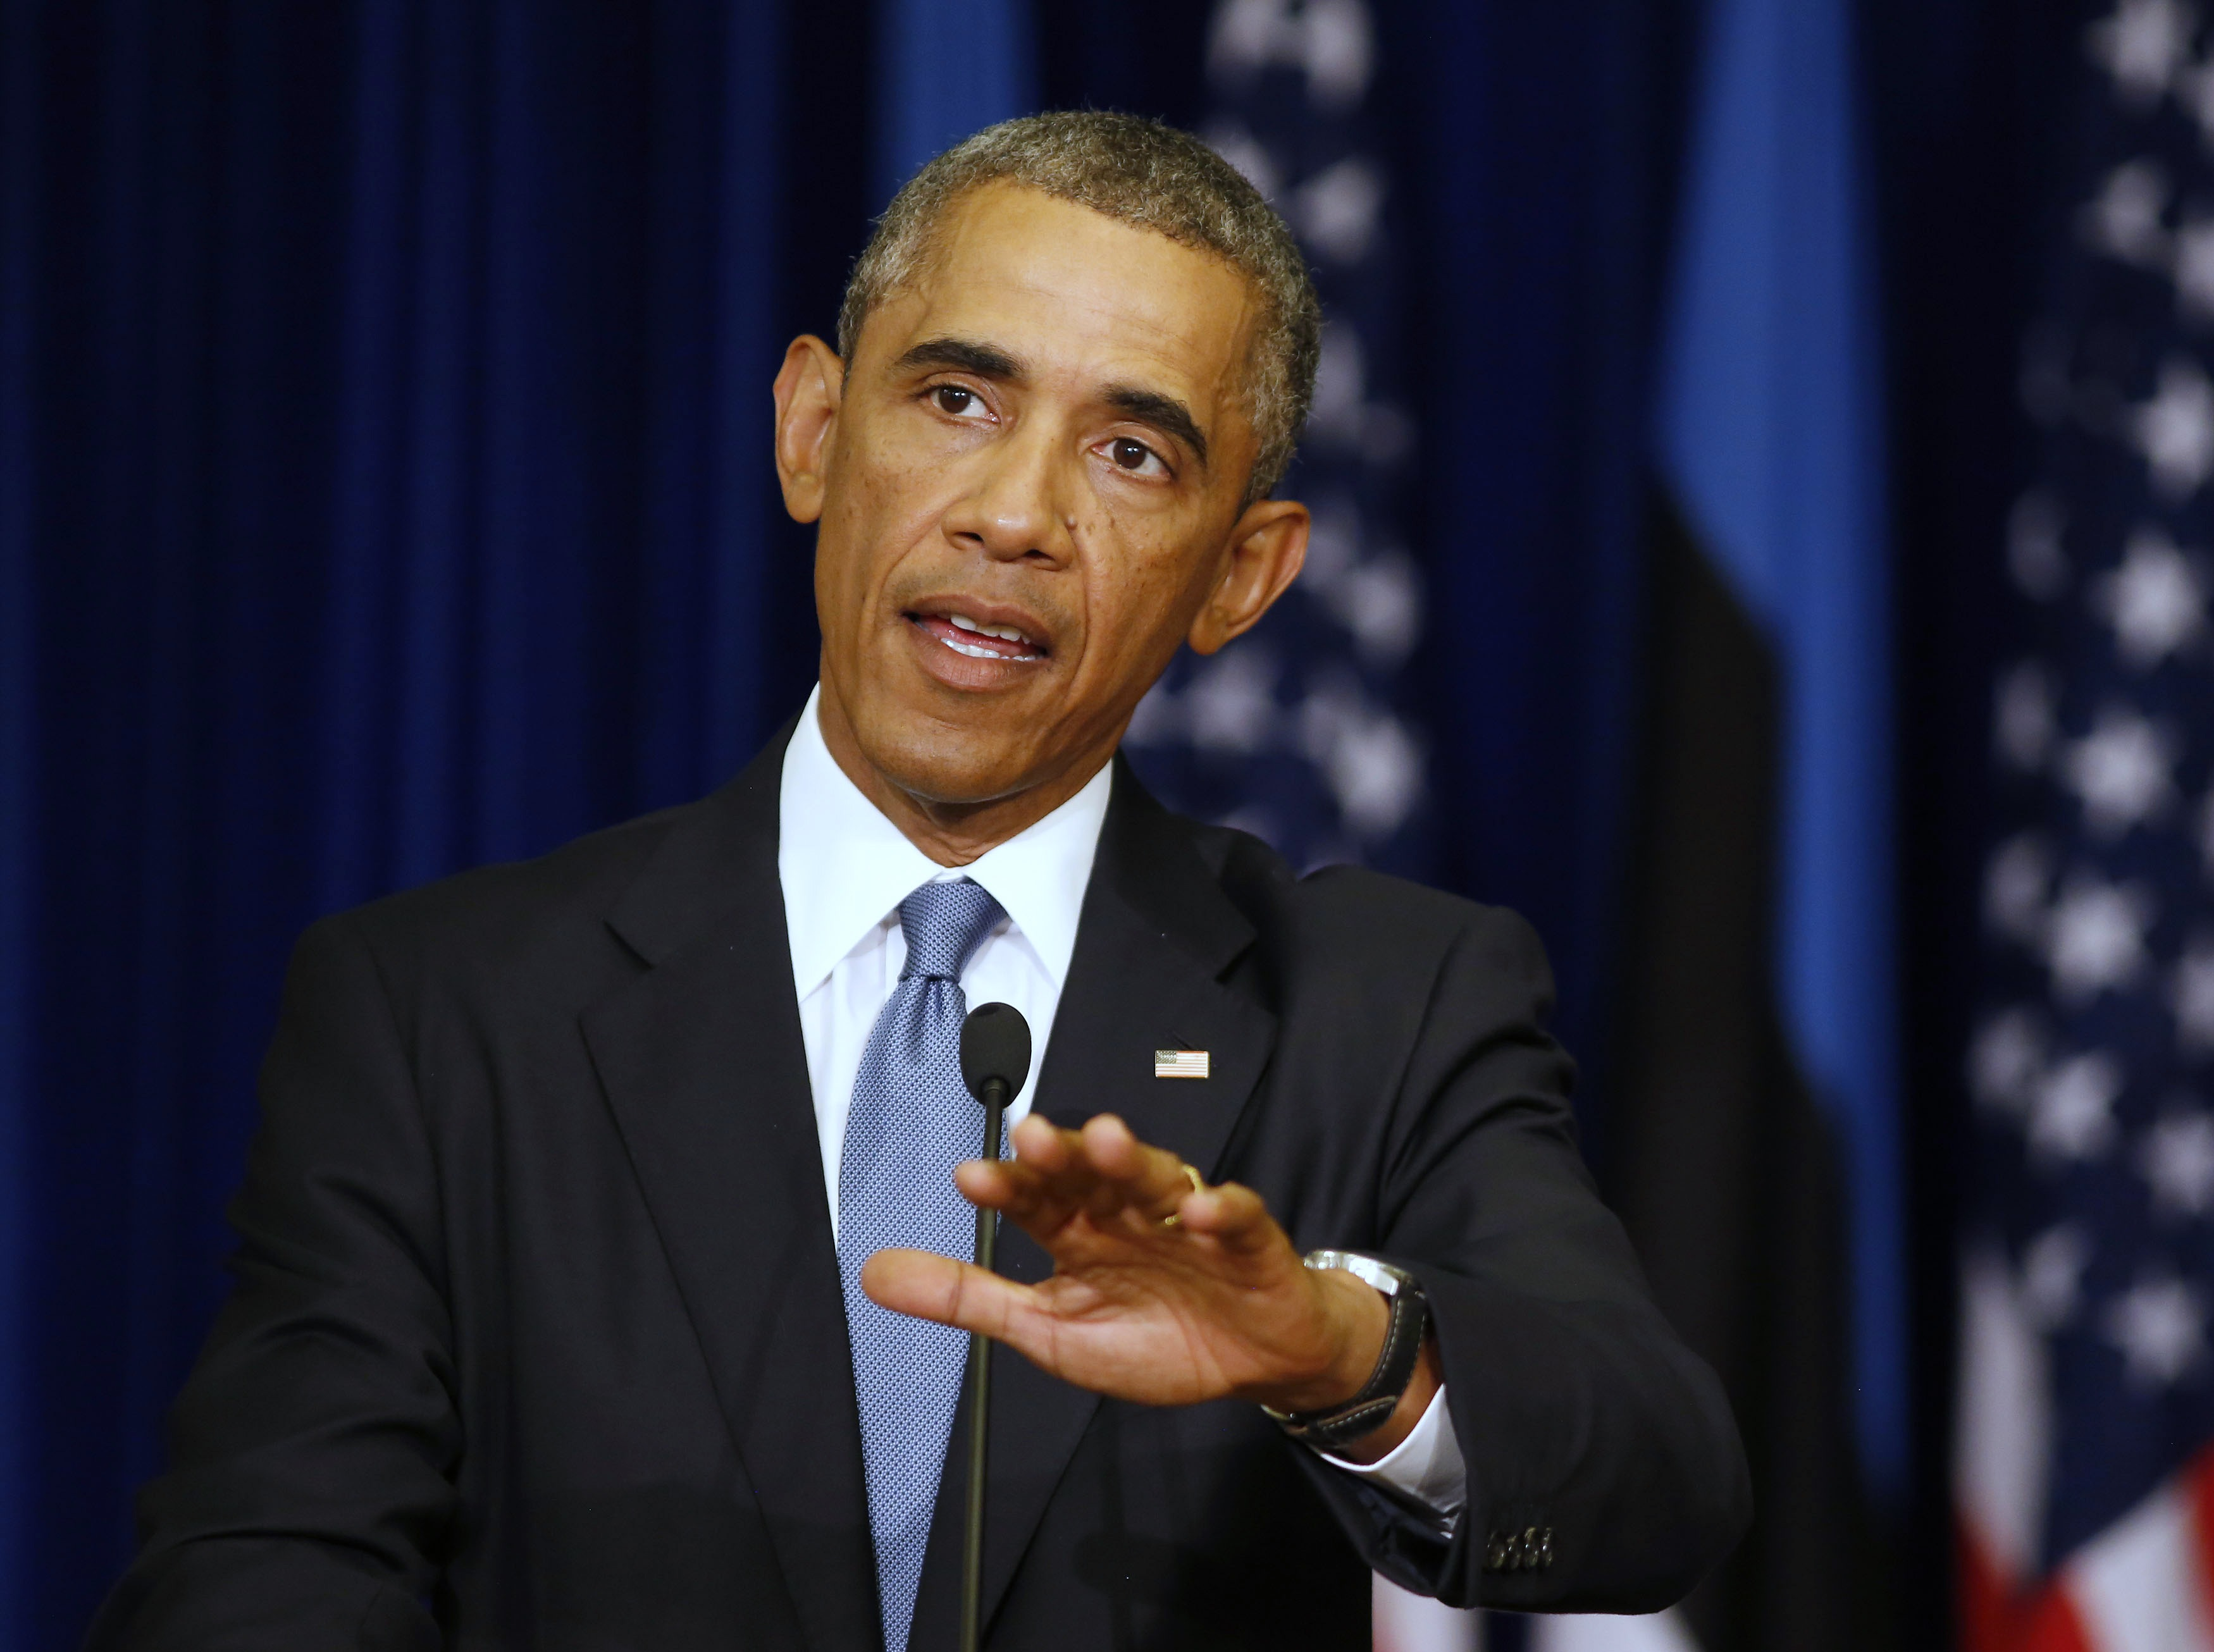 U.S. President Barack Obama gestures during a joint news conference with his Estonian counterpart Toomas Hendrik Ilves, at the Bank of Estonia in Tallinn September 3, 2014.     REUTERS/Larry Downing   (ESTONIA - Tags: POLITICS PROFILE)